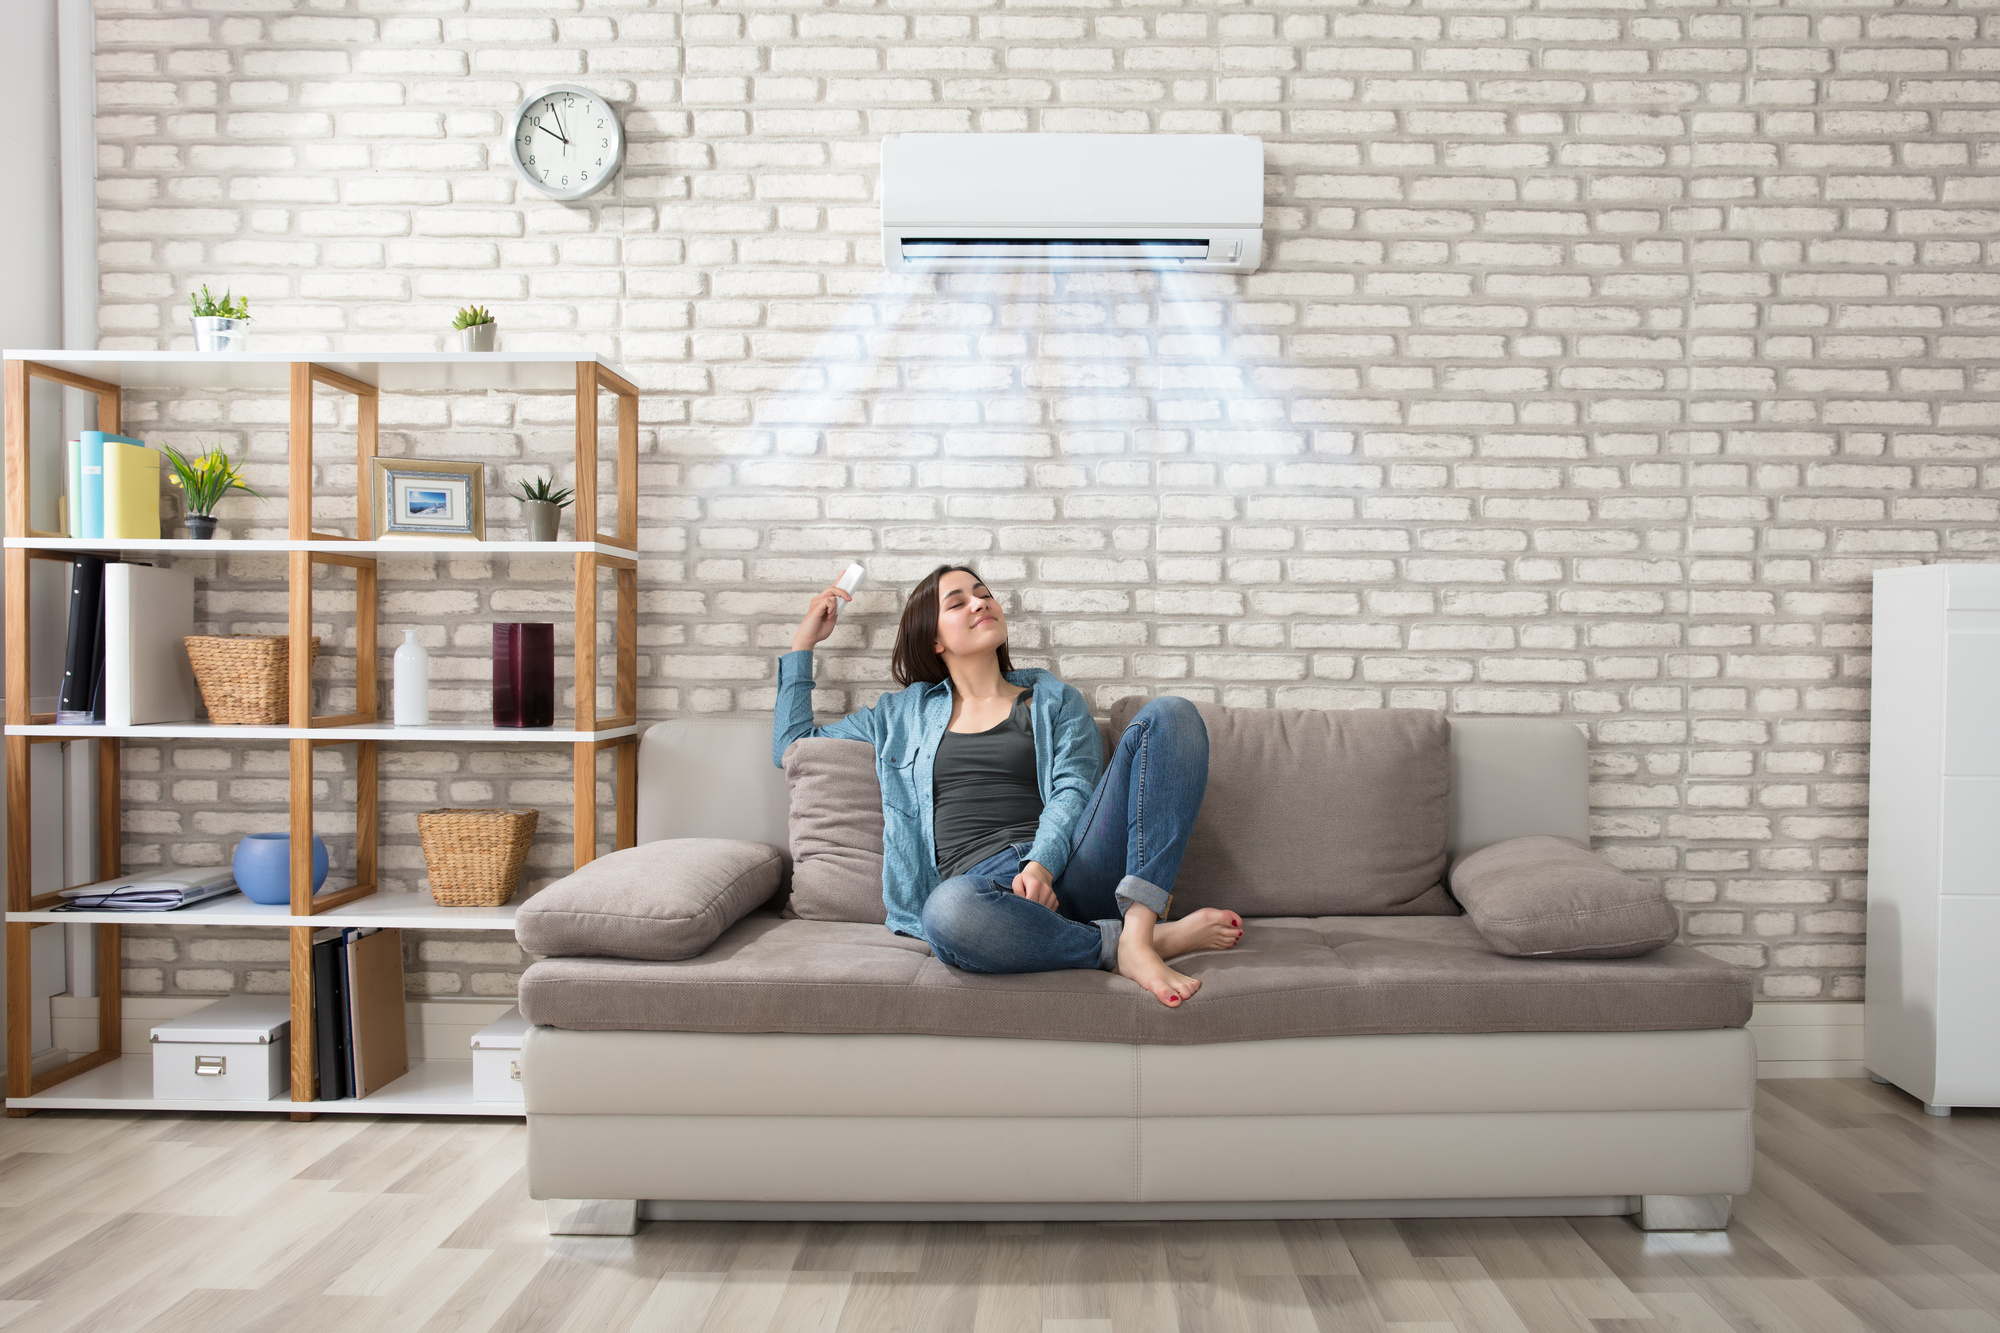 Das Beste 10 Tips For How To Cool A Room Without Ac Hosbeg Com In Diesem Monat